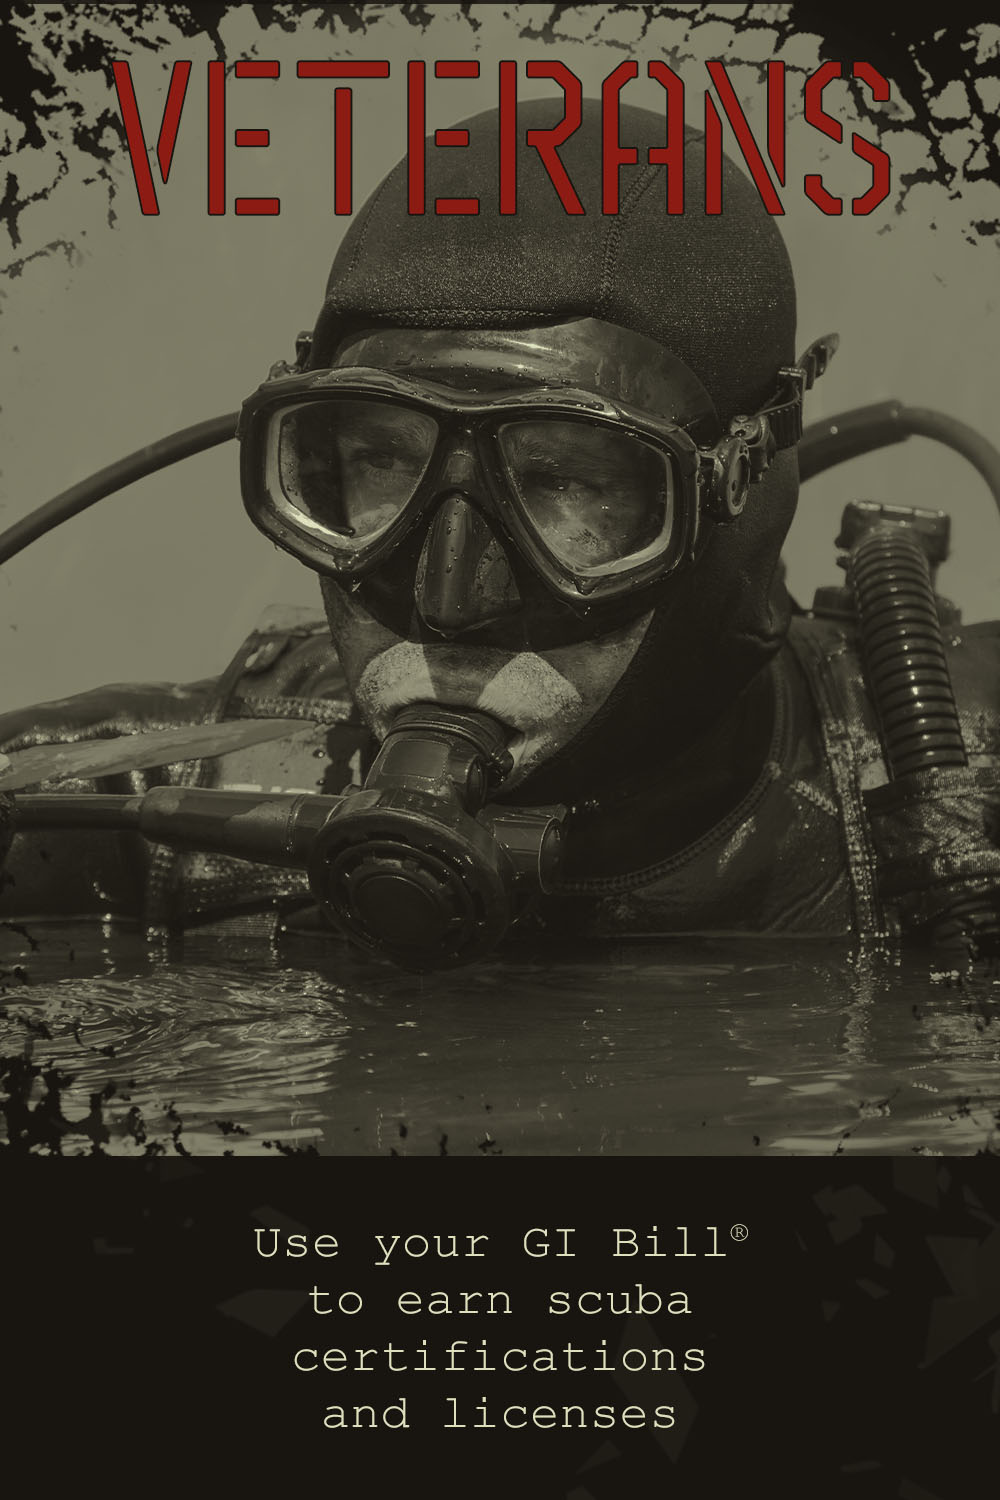 Veterans - Use your GI Bill to earn scuba certifications and licenses - mobile